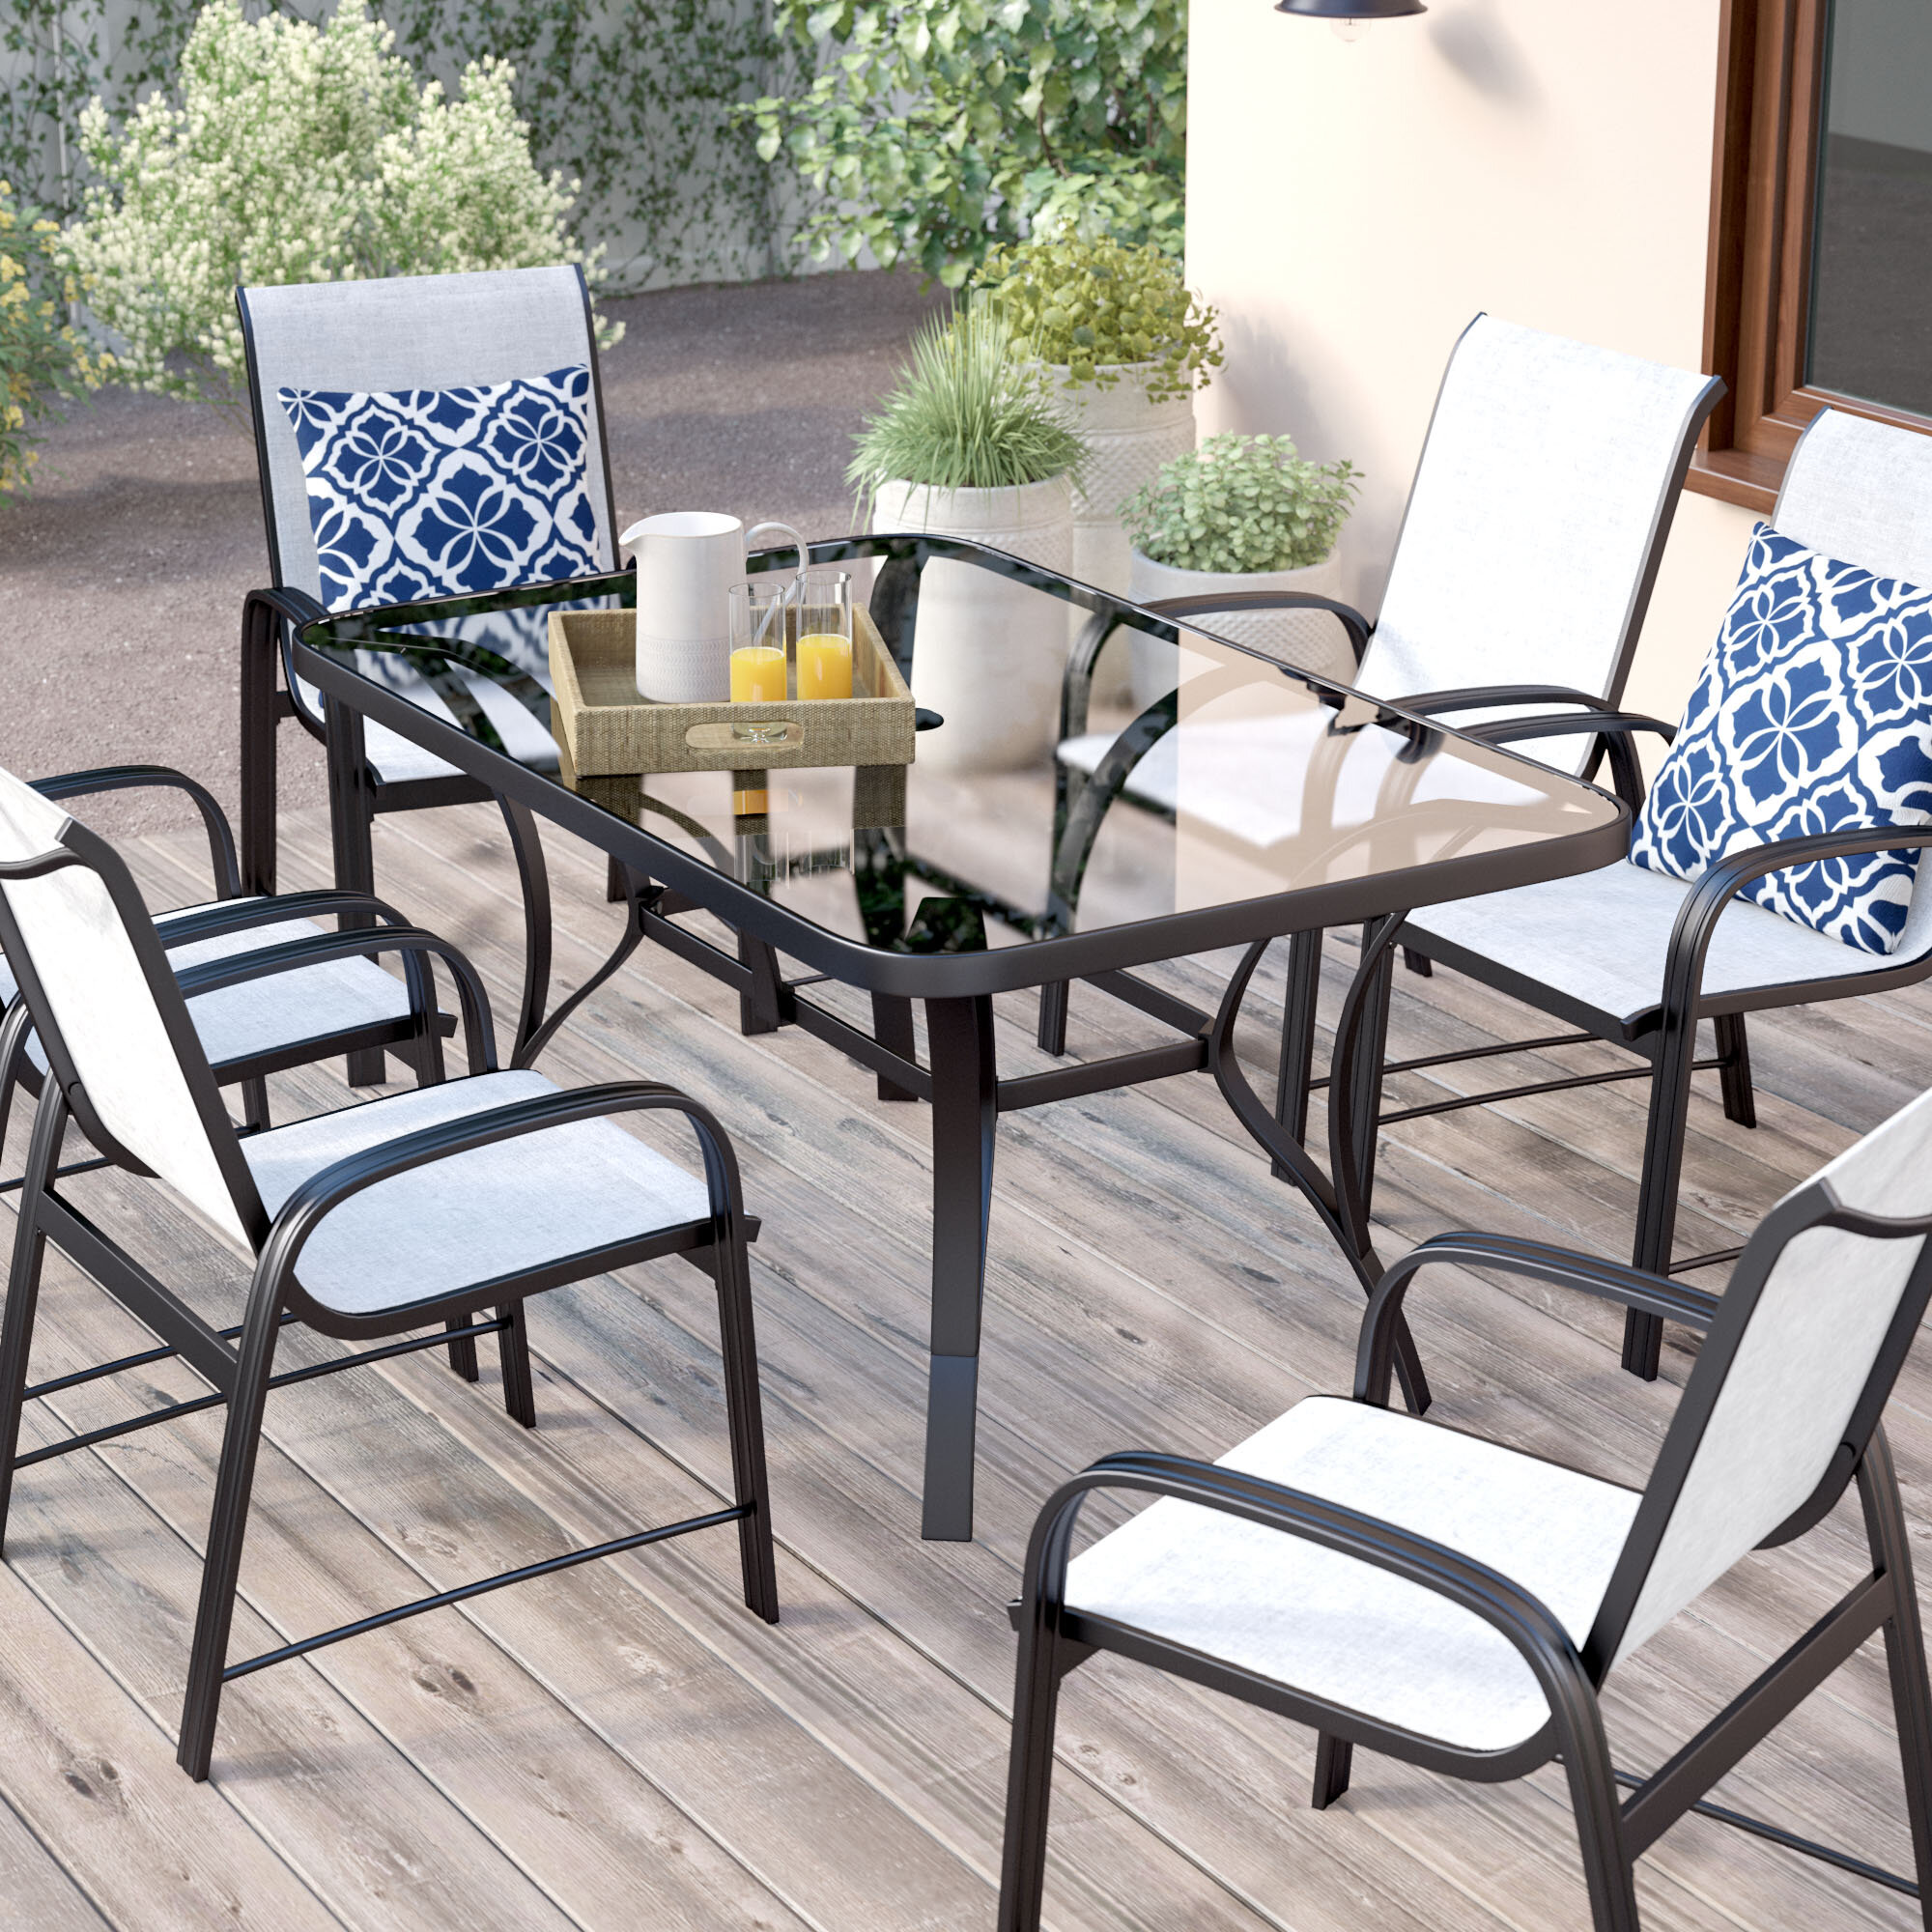 wayfair east patio reviews rosecliff outdoor set pdp heights ca dining village